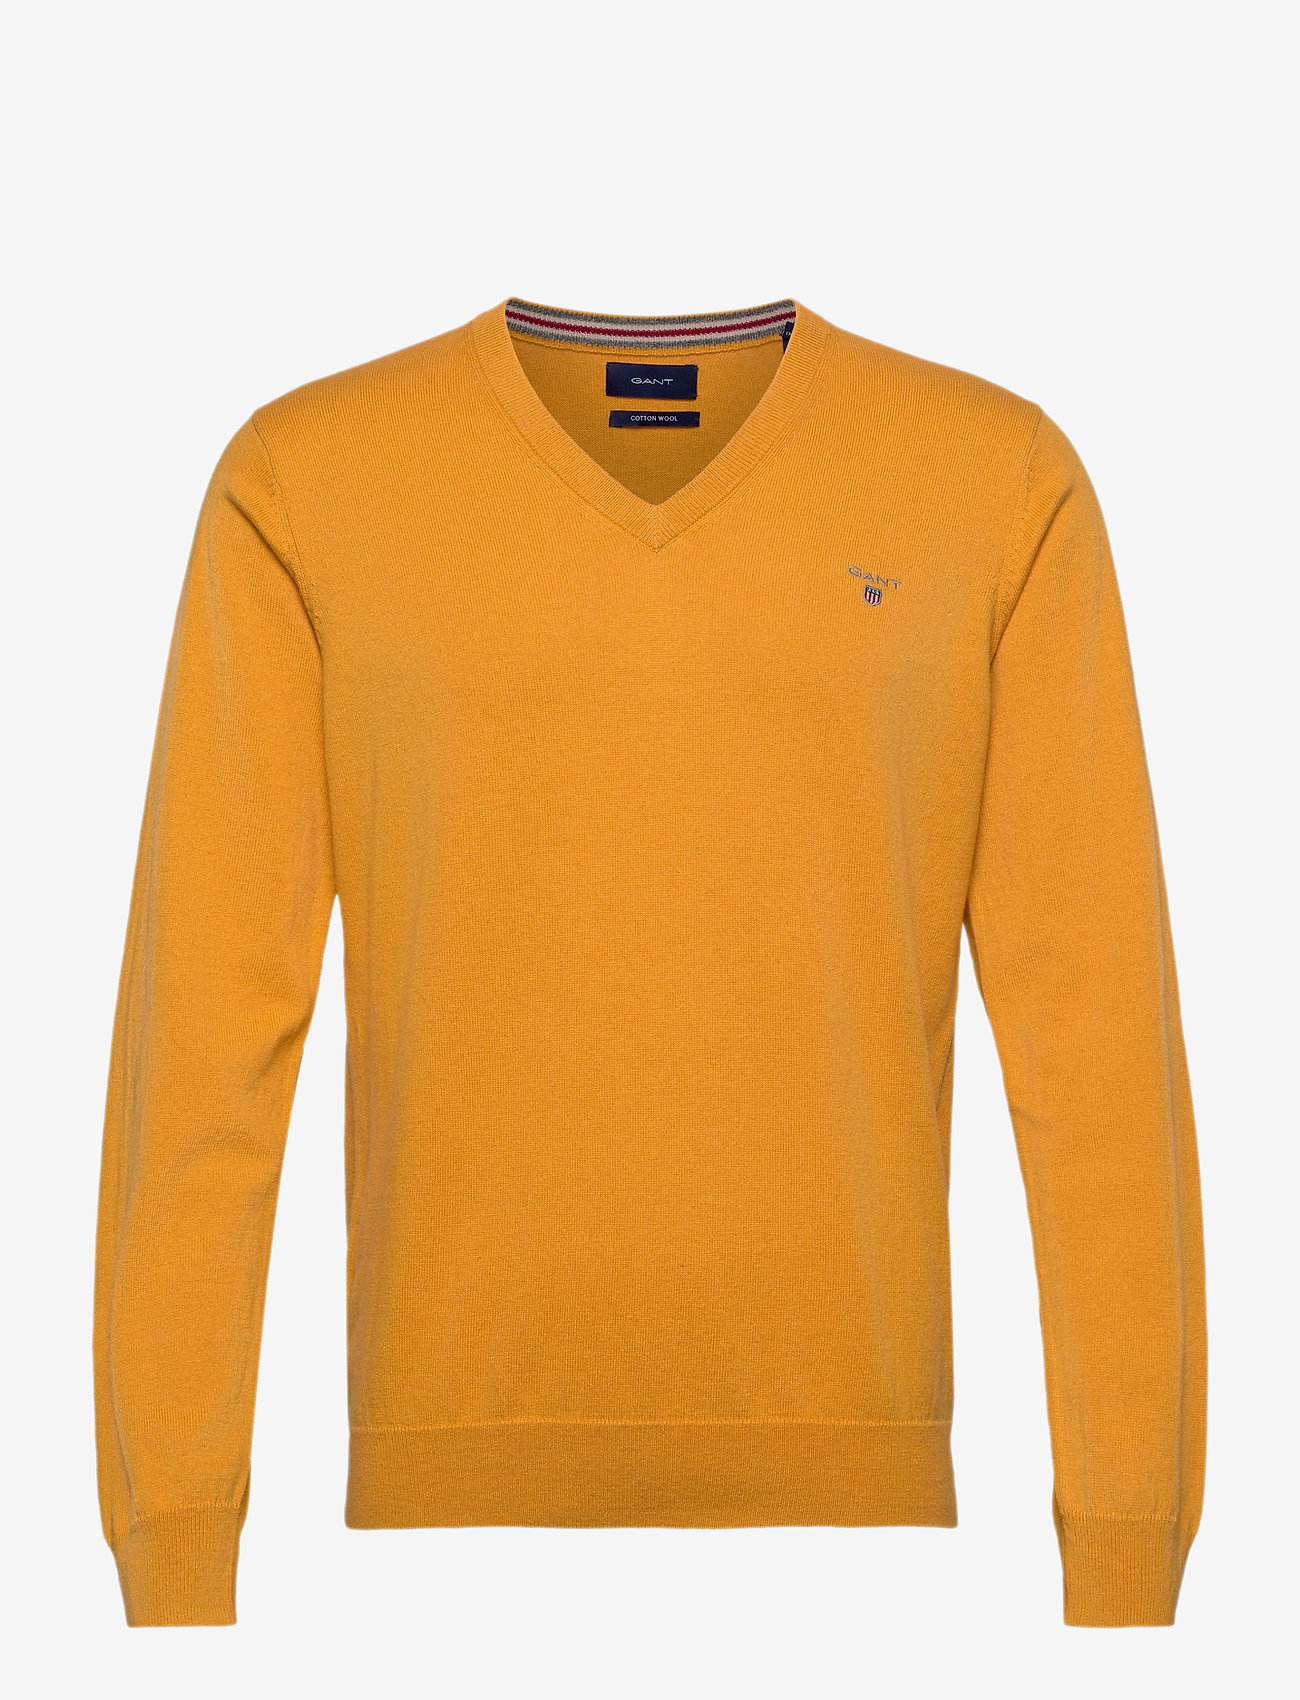 GANT - COTTON WOOL V-NECK - knitted v-necks - ivy gold - 0